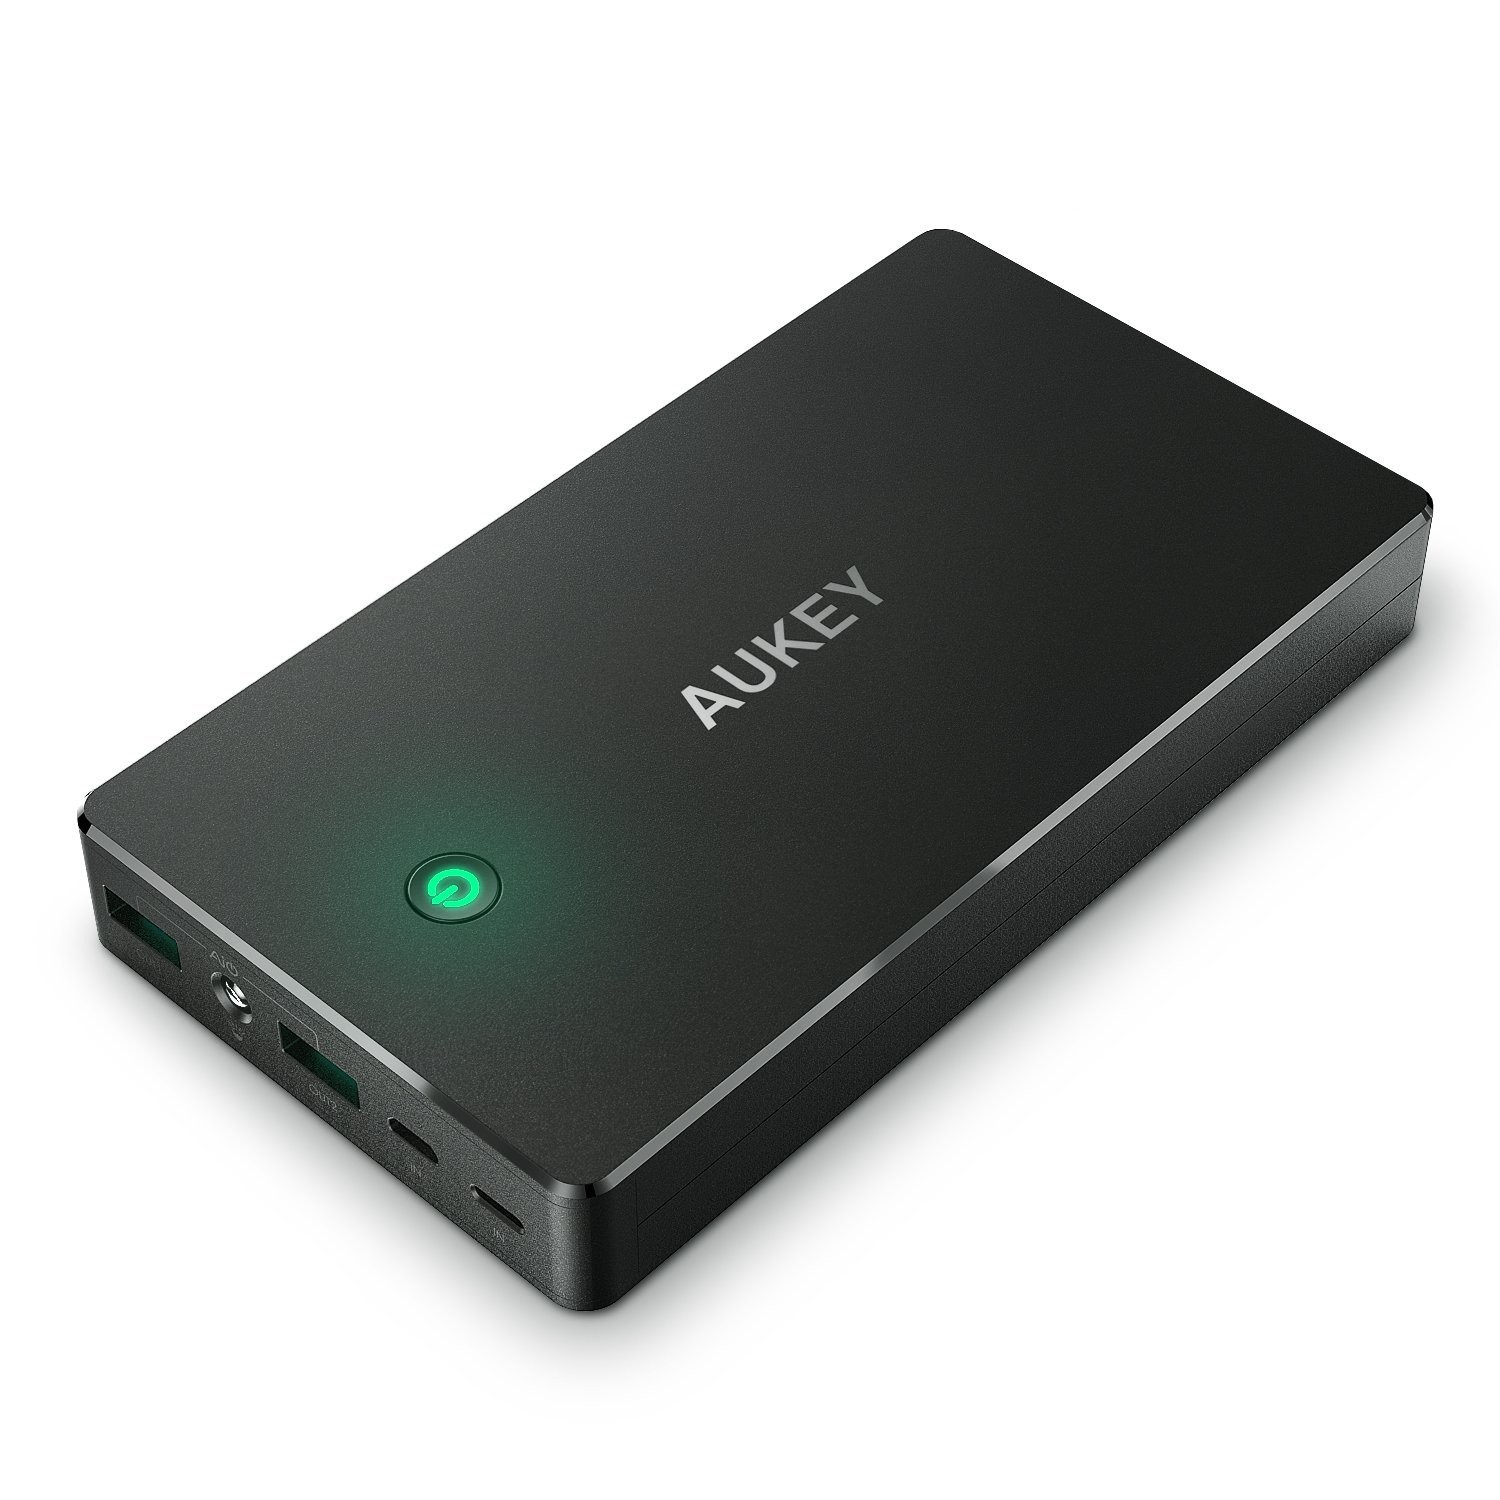 AUKEY 20000mAh Power Bank with Lightning & Micro Input Portable Charger - Black, PB-N36